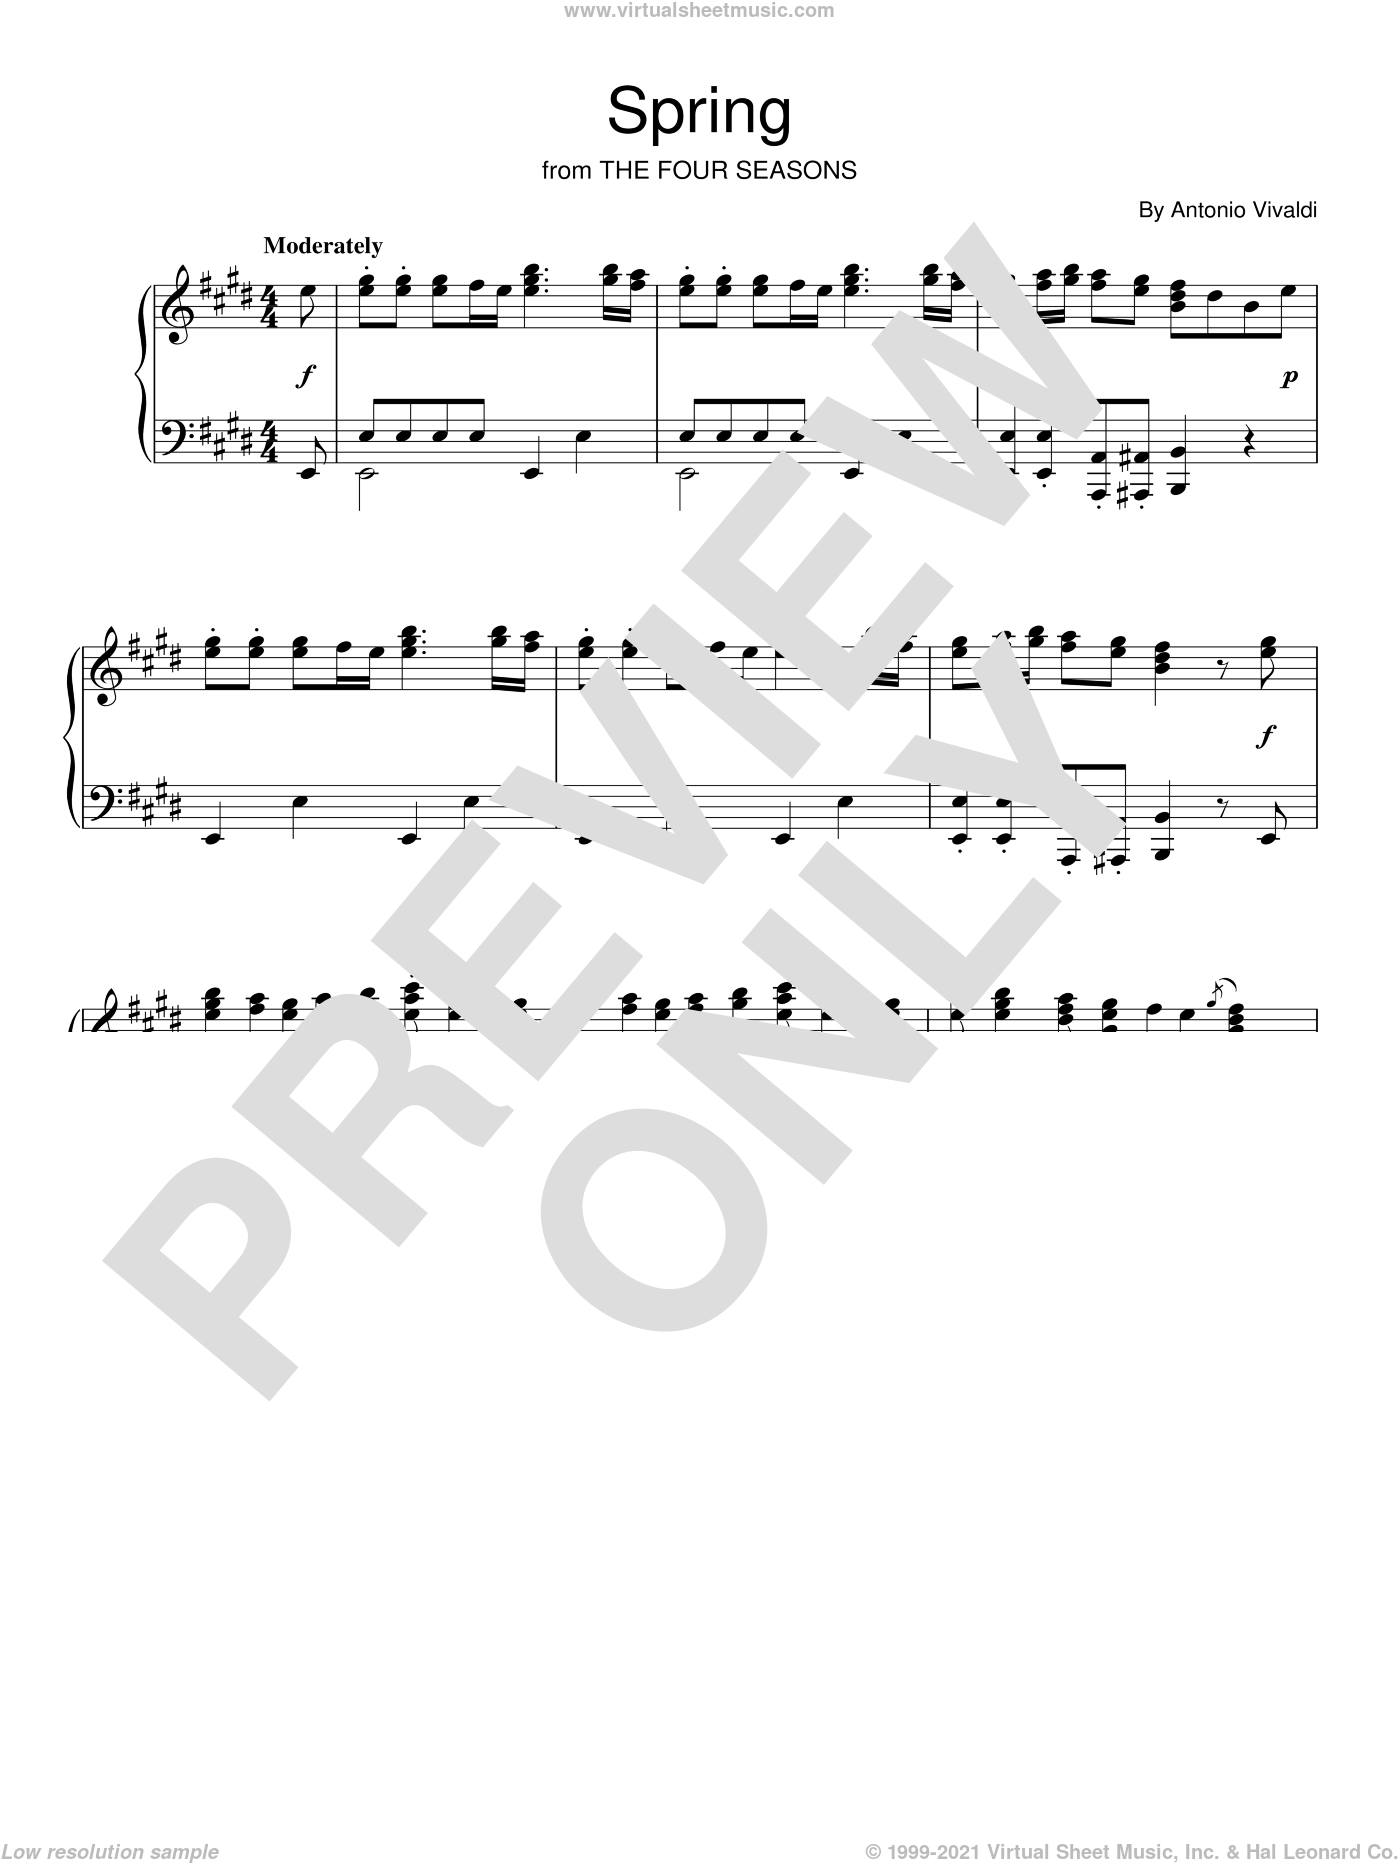 Spring (from The Four Seasons) sheet music for piano solo by Antonio Vivaldi, classical score, intermediate skill level